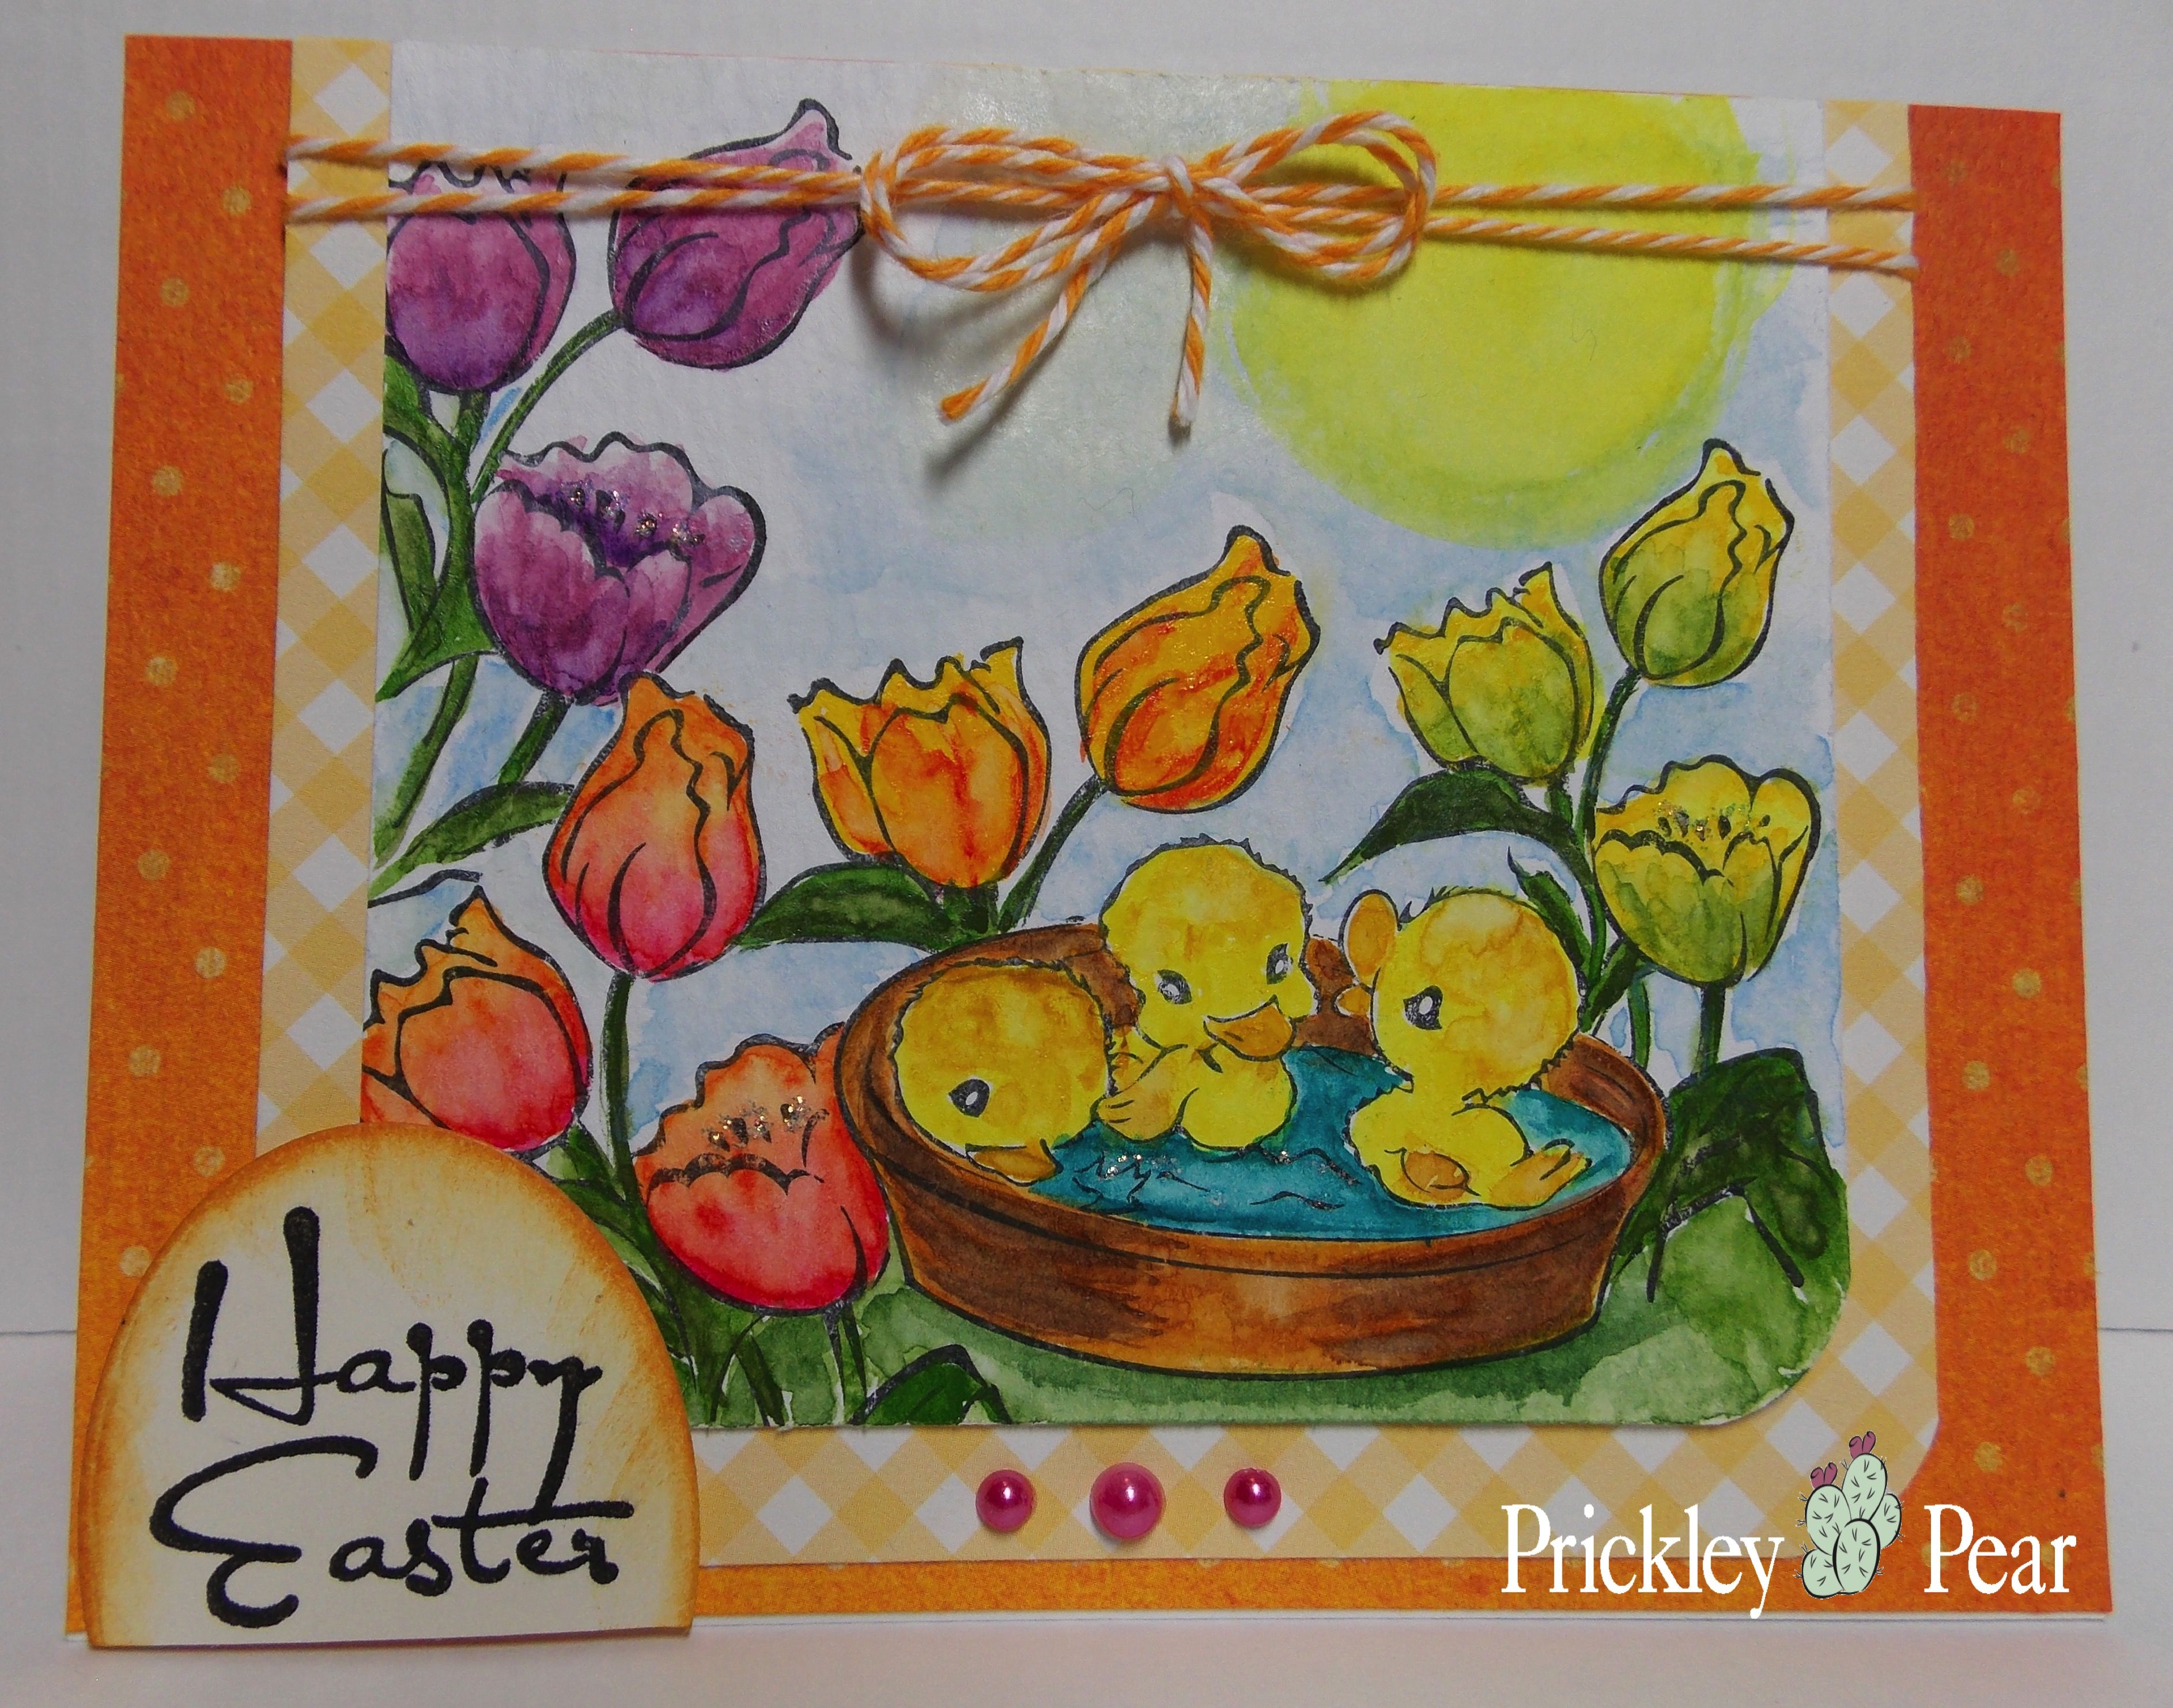 Last DT card for Prickley Pear stamps.  Featuring Pond of Ducklings and Easter Flowers. My blog: http://cardsandpaperfun.blogspot.com/2015/03/pond-of-ducklings.html